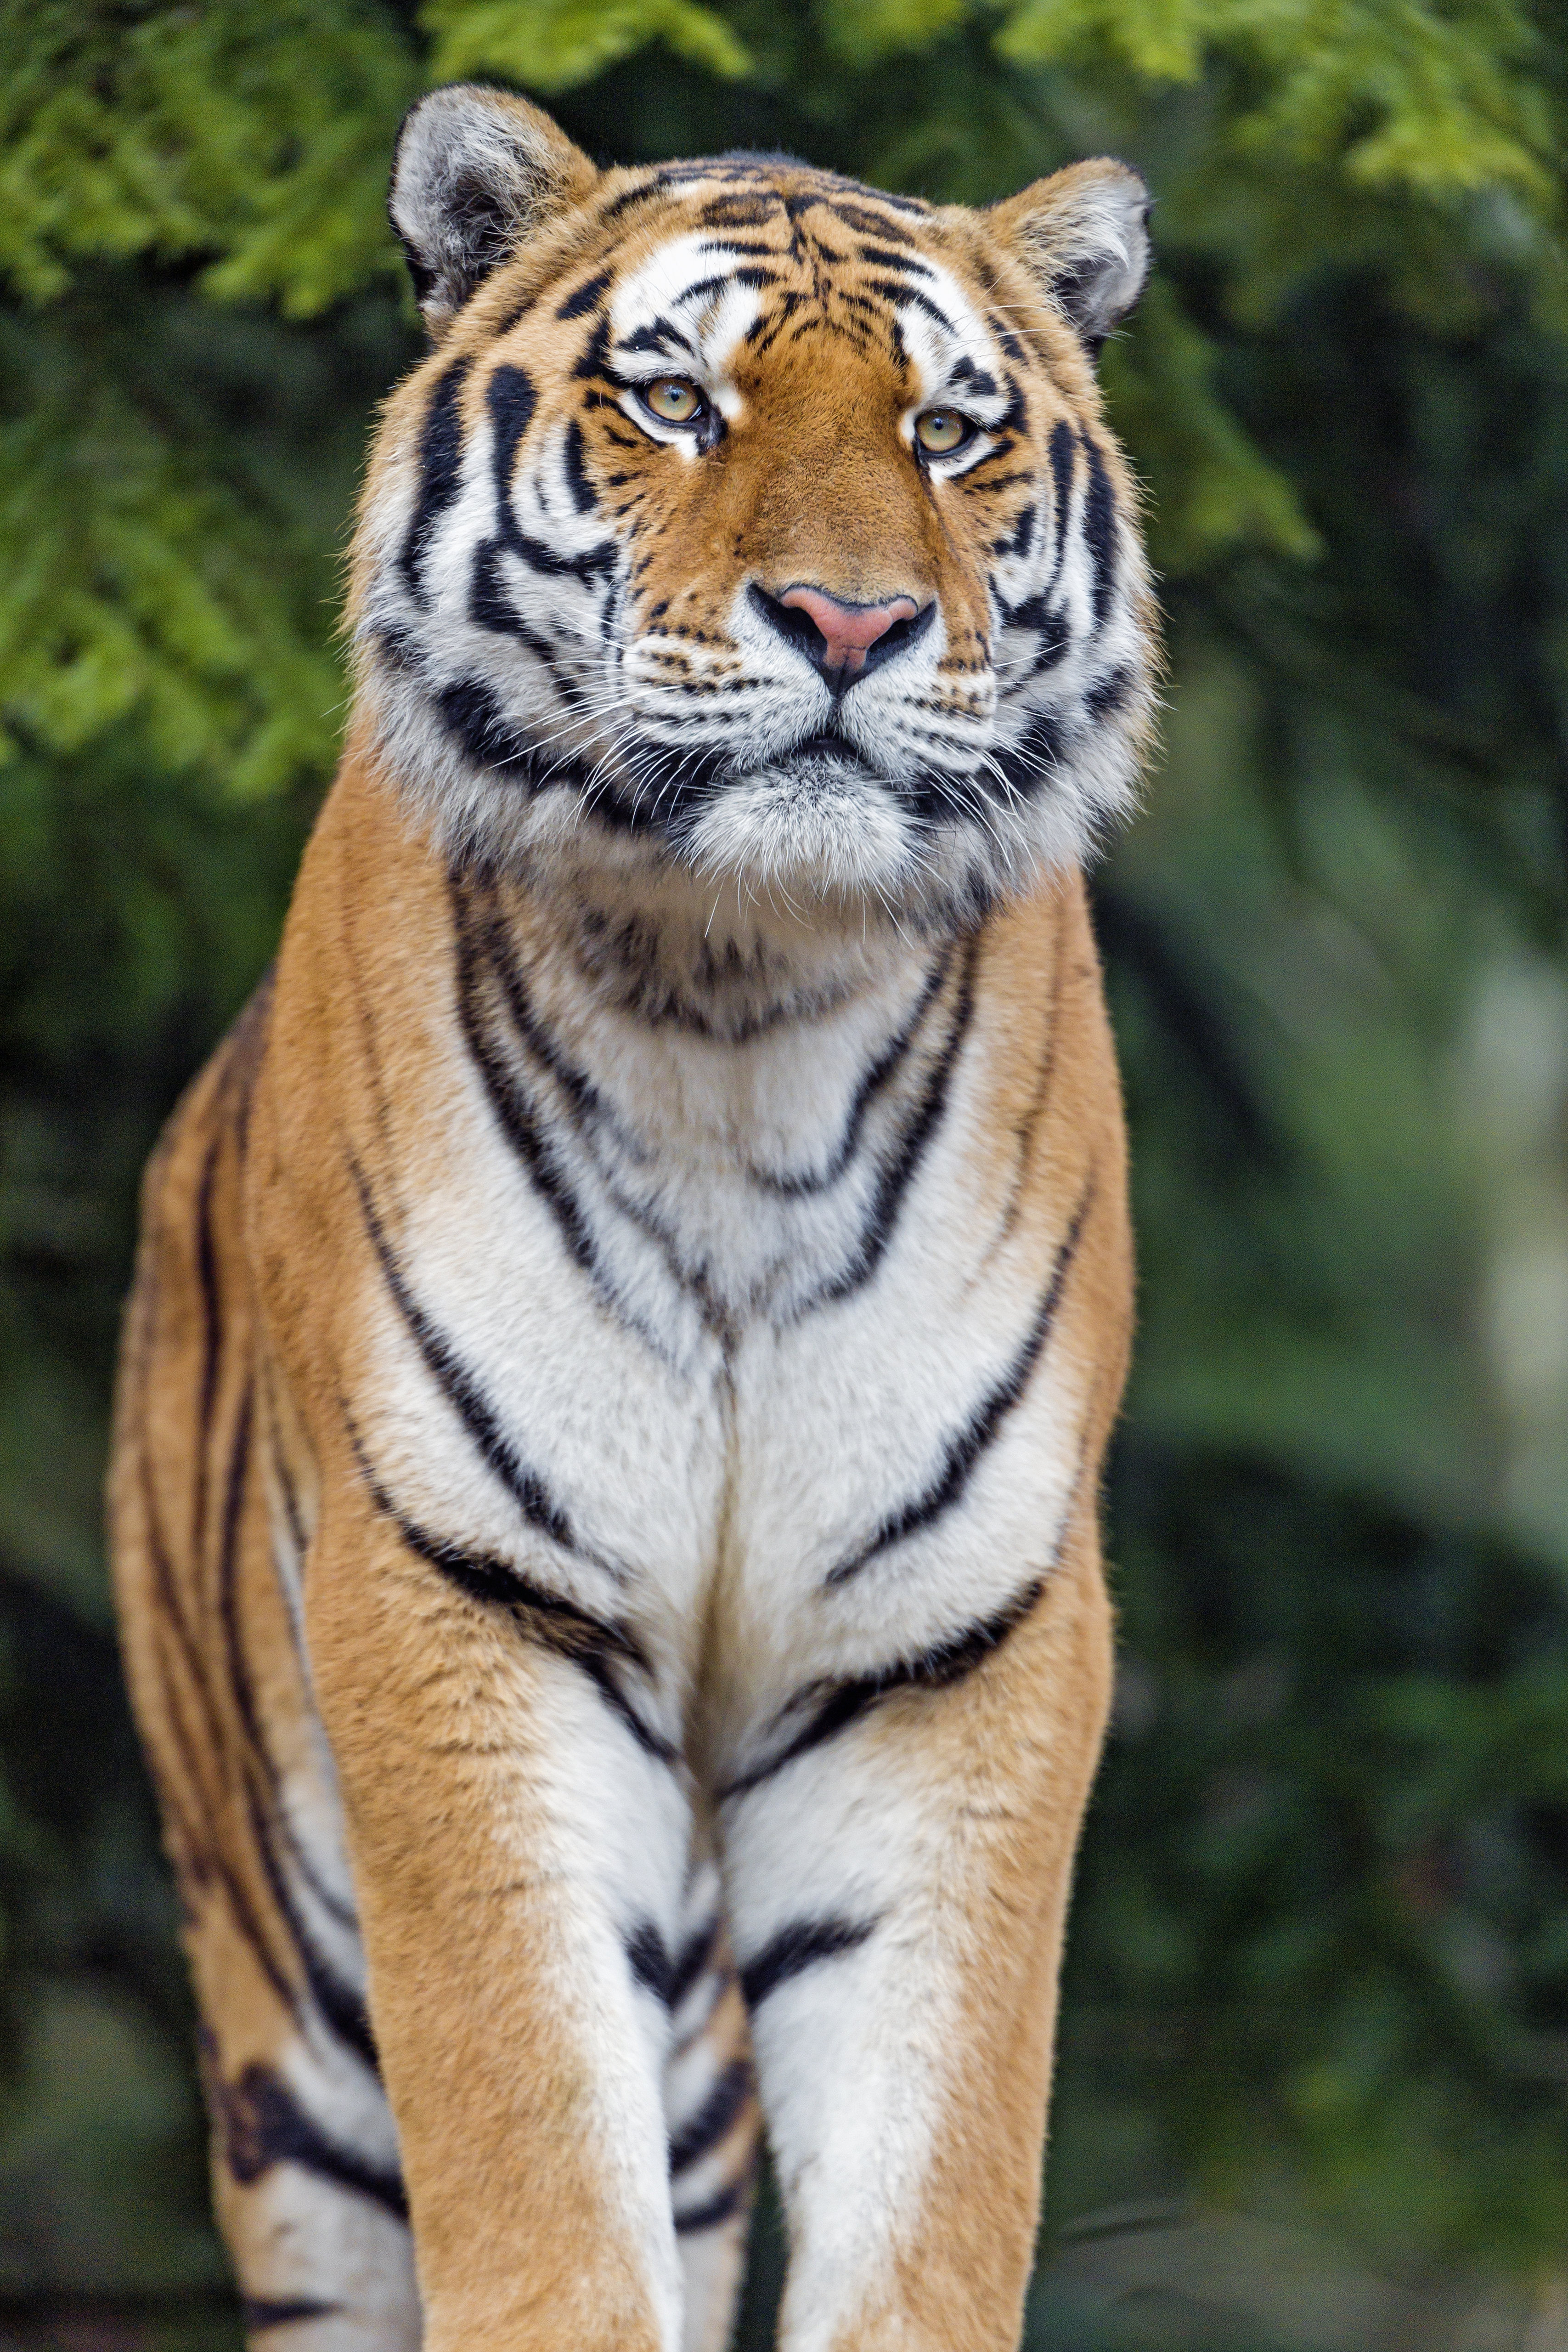 79986 download wallpaper Animals, Tiger, Big Cat, Sight, Opinion, Predator screensavers and pictures for free